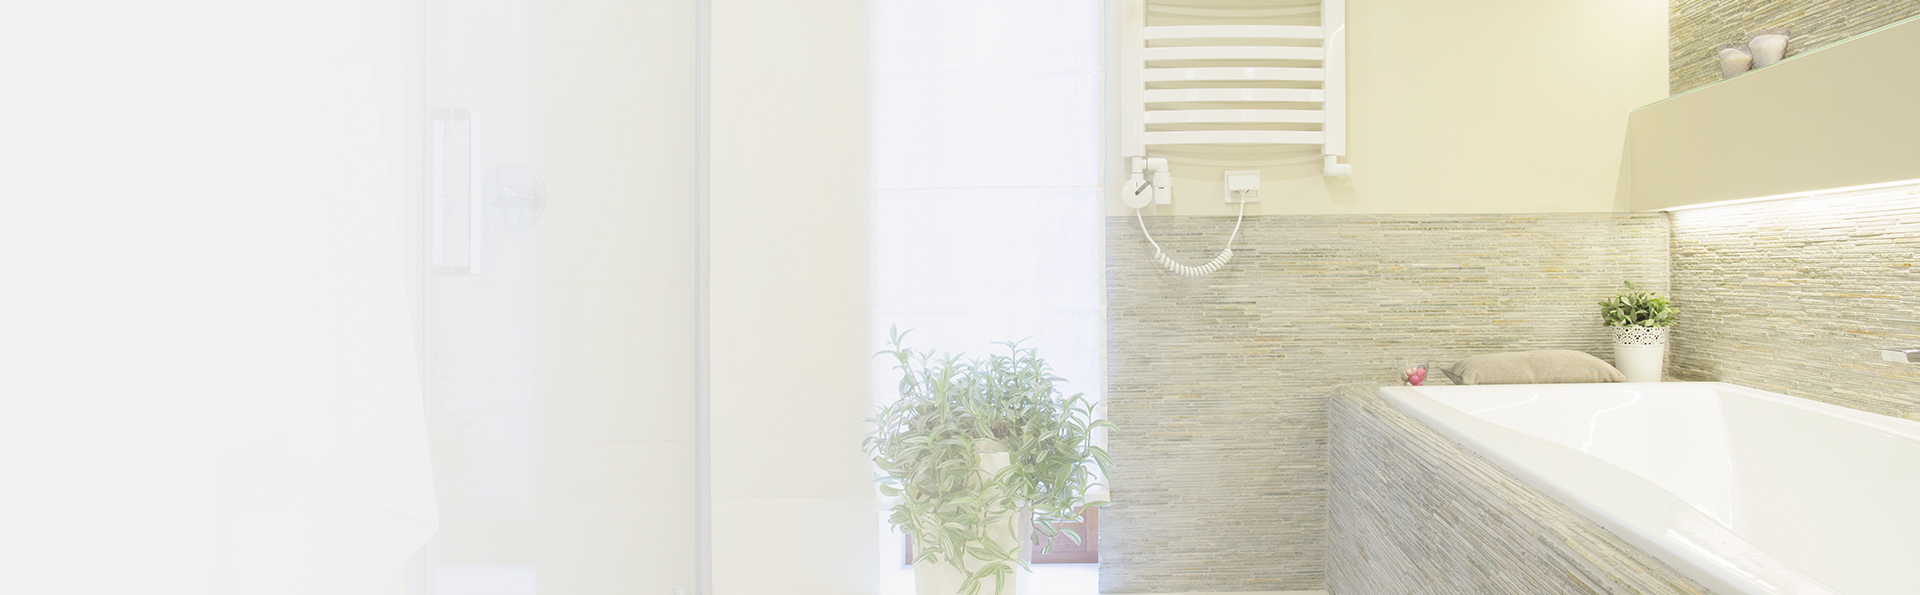 Bathroom Cleaning - Kelowna Cleaning Services All About Details